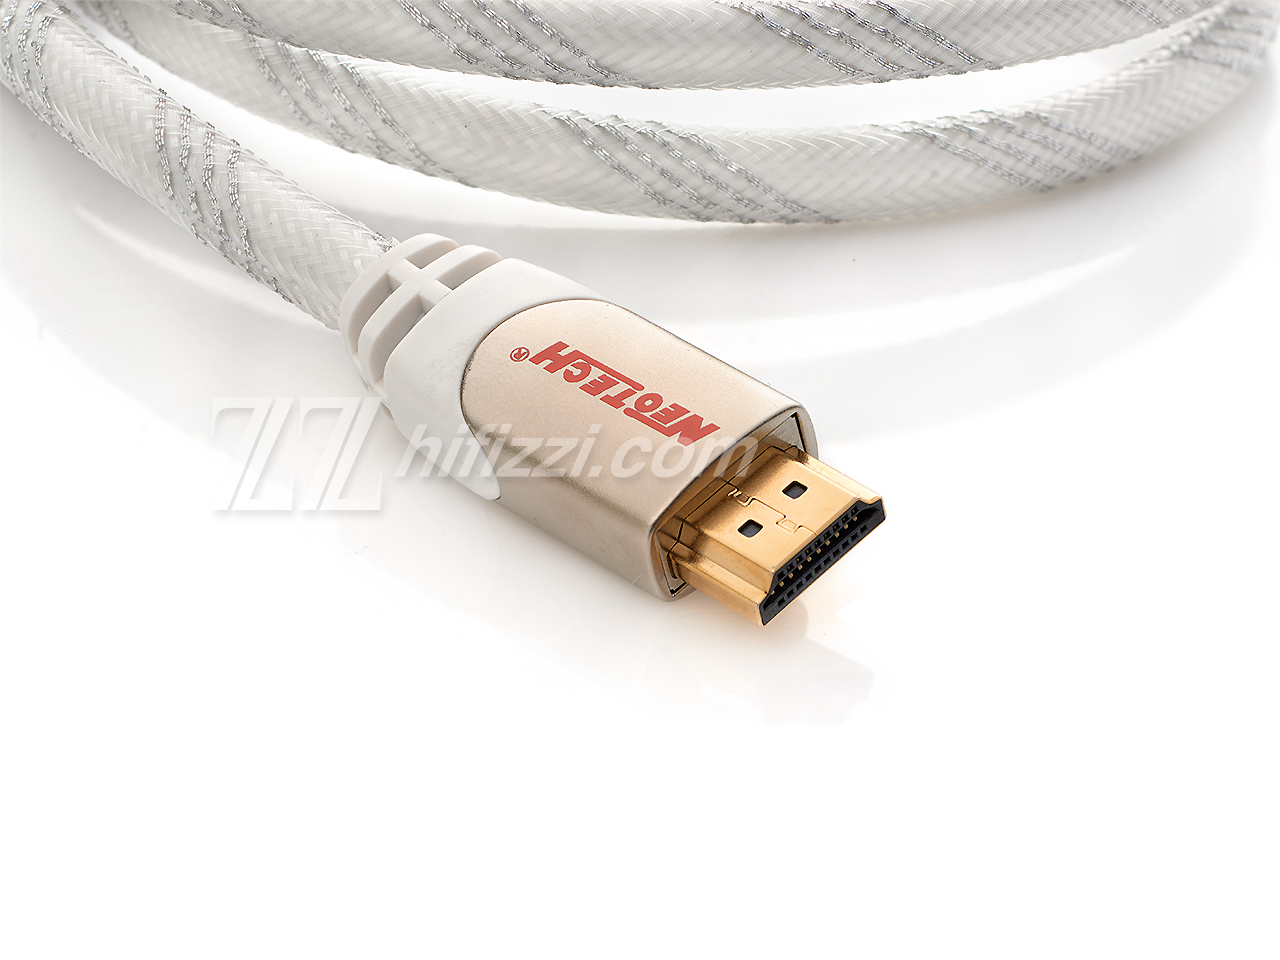 Neotech NEHH-4200-SPOFC HDMI cable 1m — Фото 2